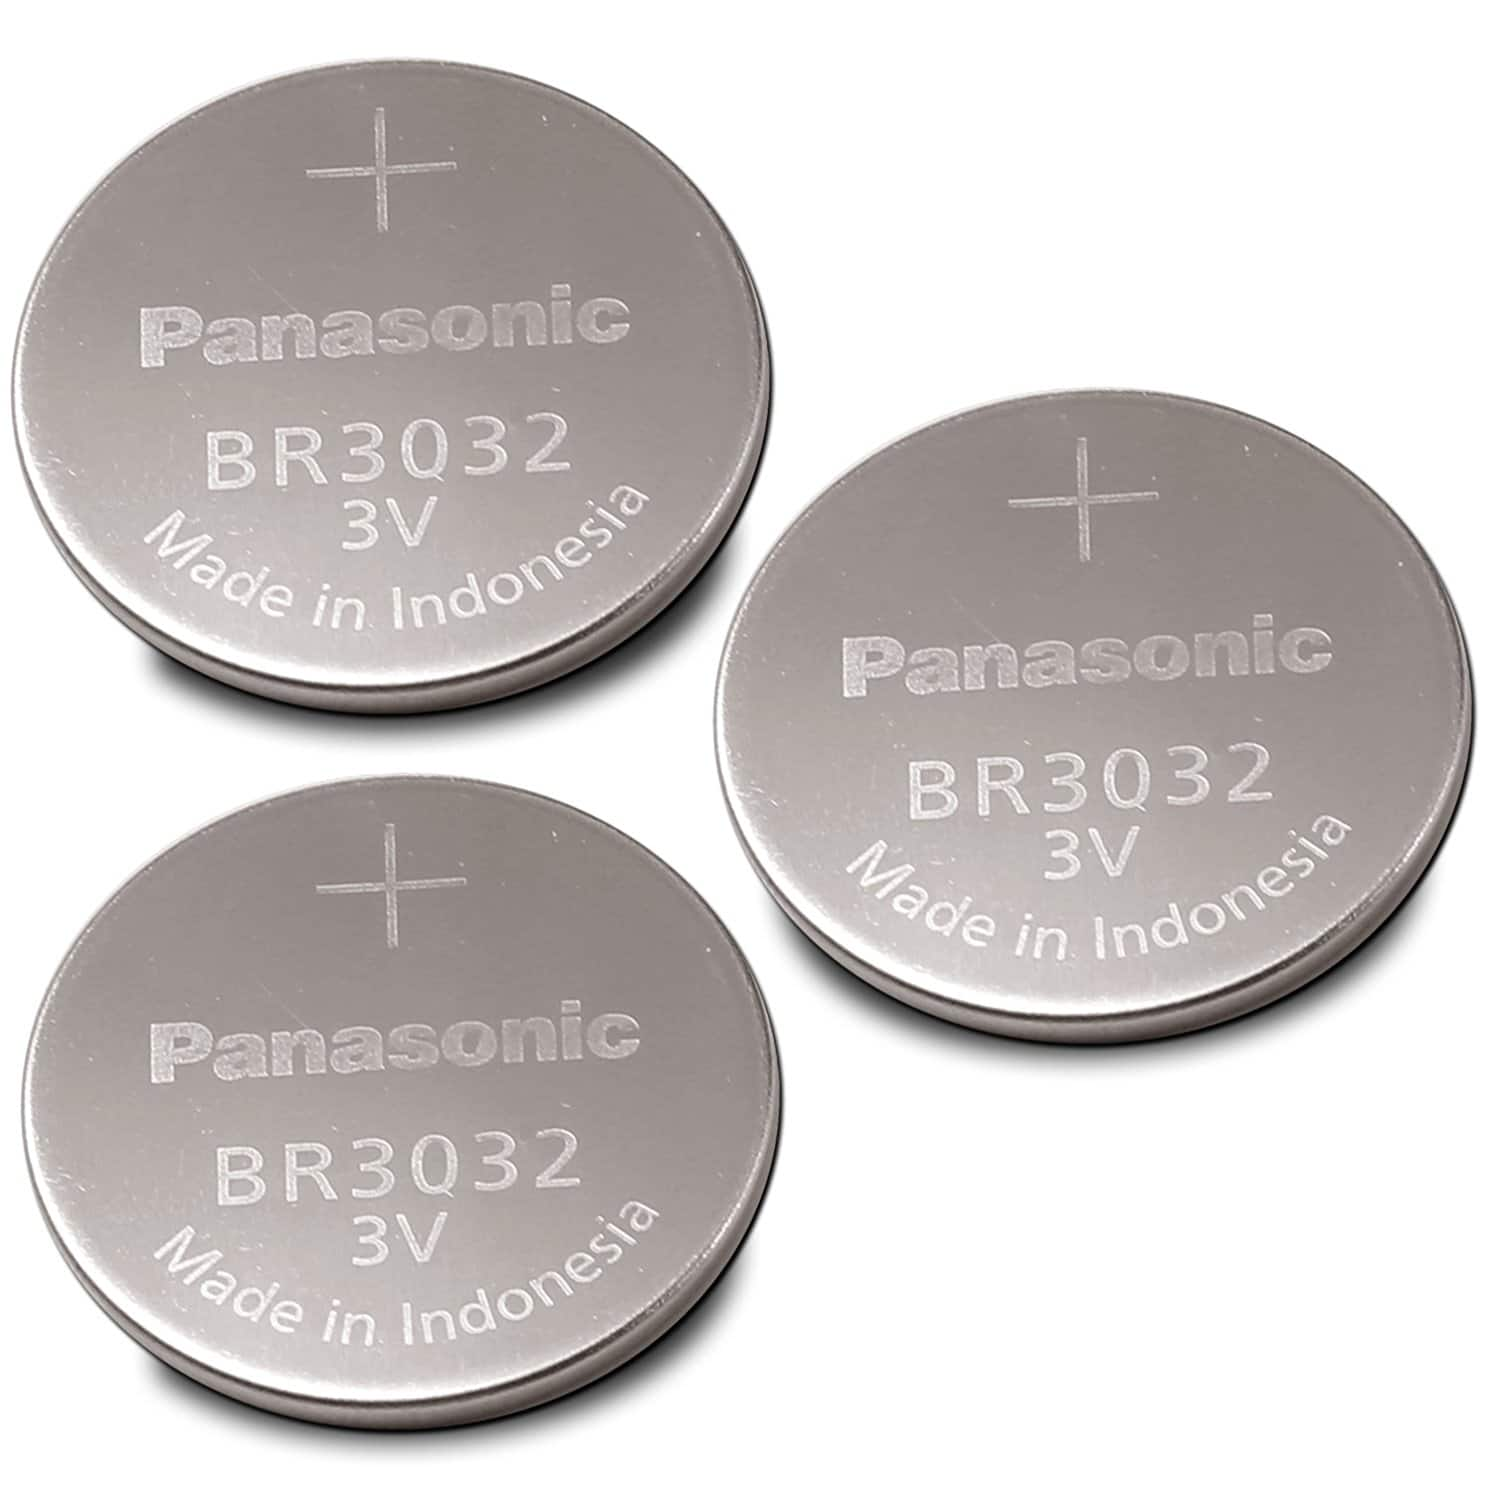 Panasonic Battery, Lithium Button Cell Br3032 (3 Pieces) $6.93 ($2.31 / Each Set)  (21% off) @amazon